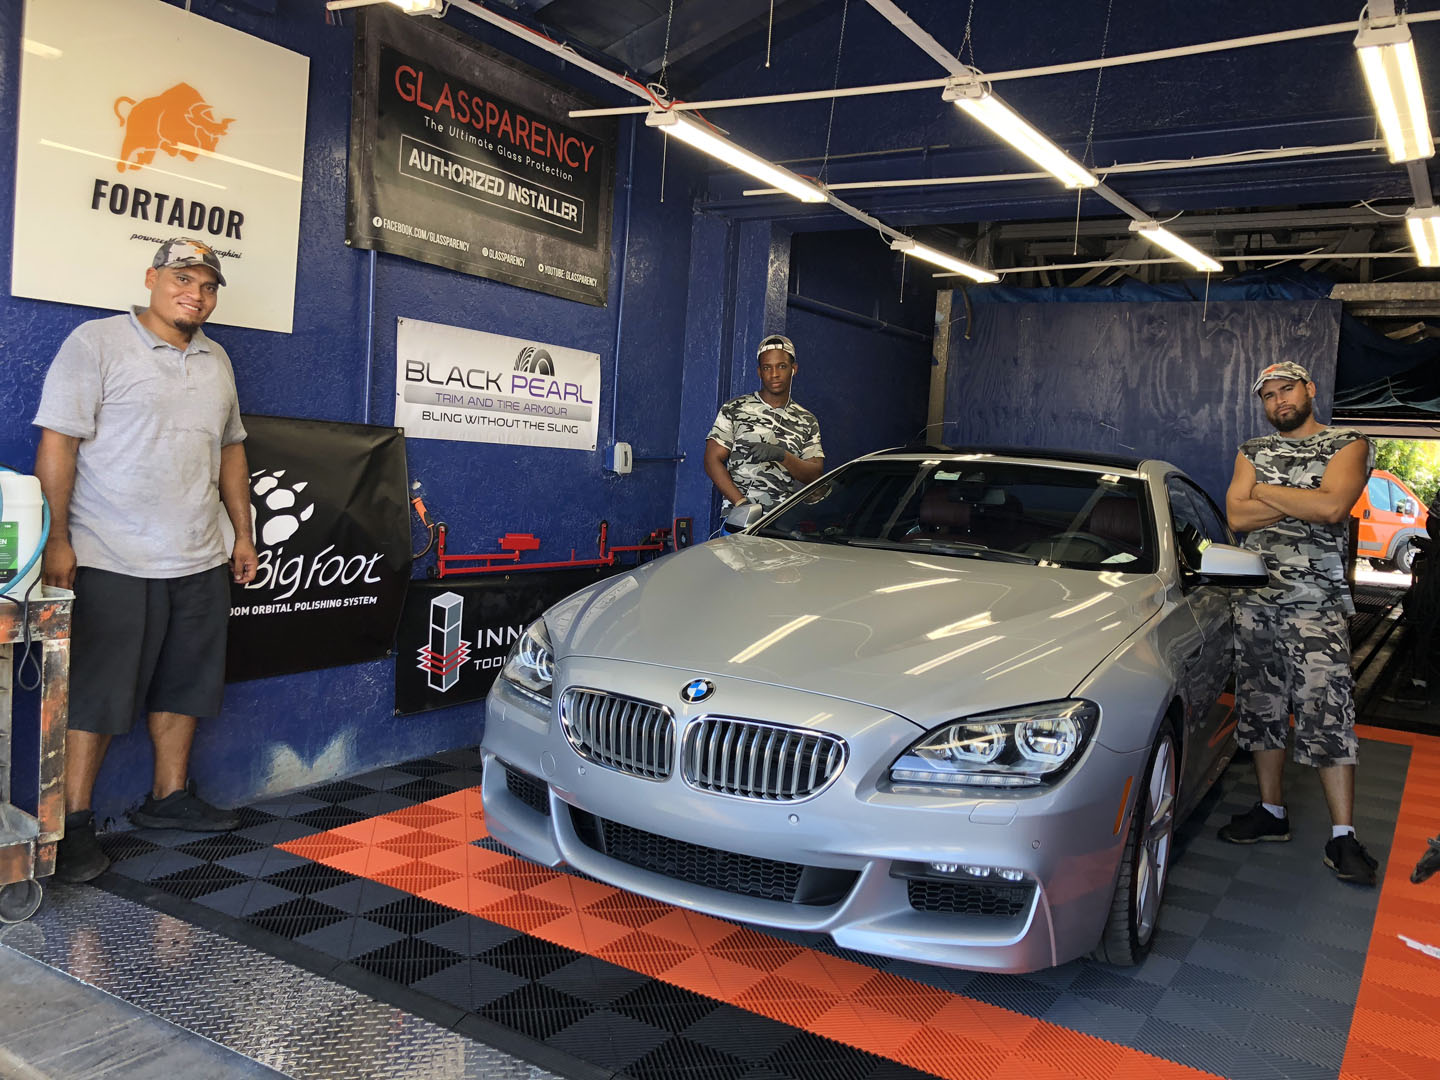 Car Detailing service with eco-friendly steam equipment